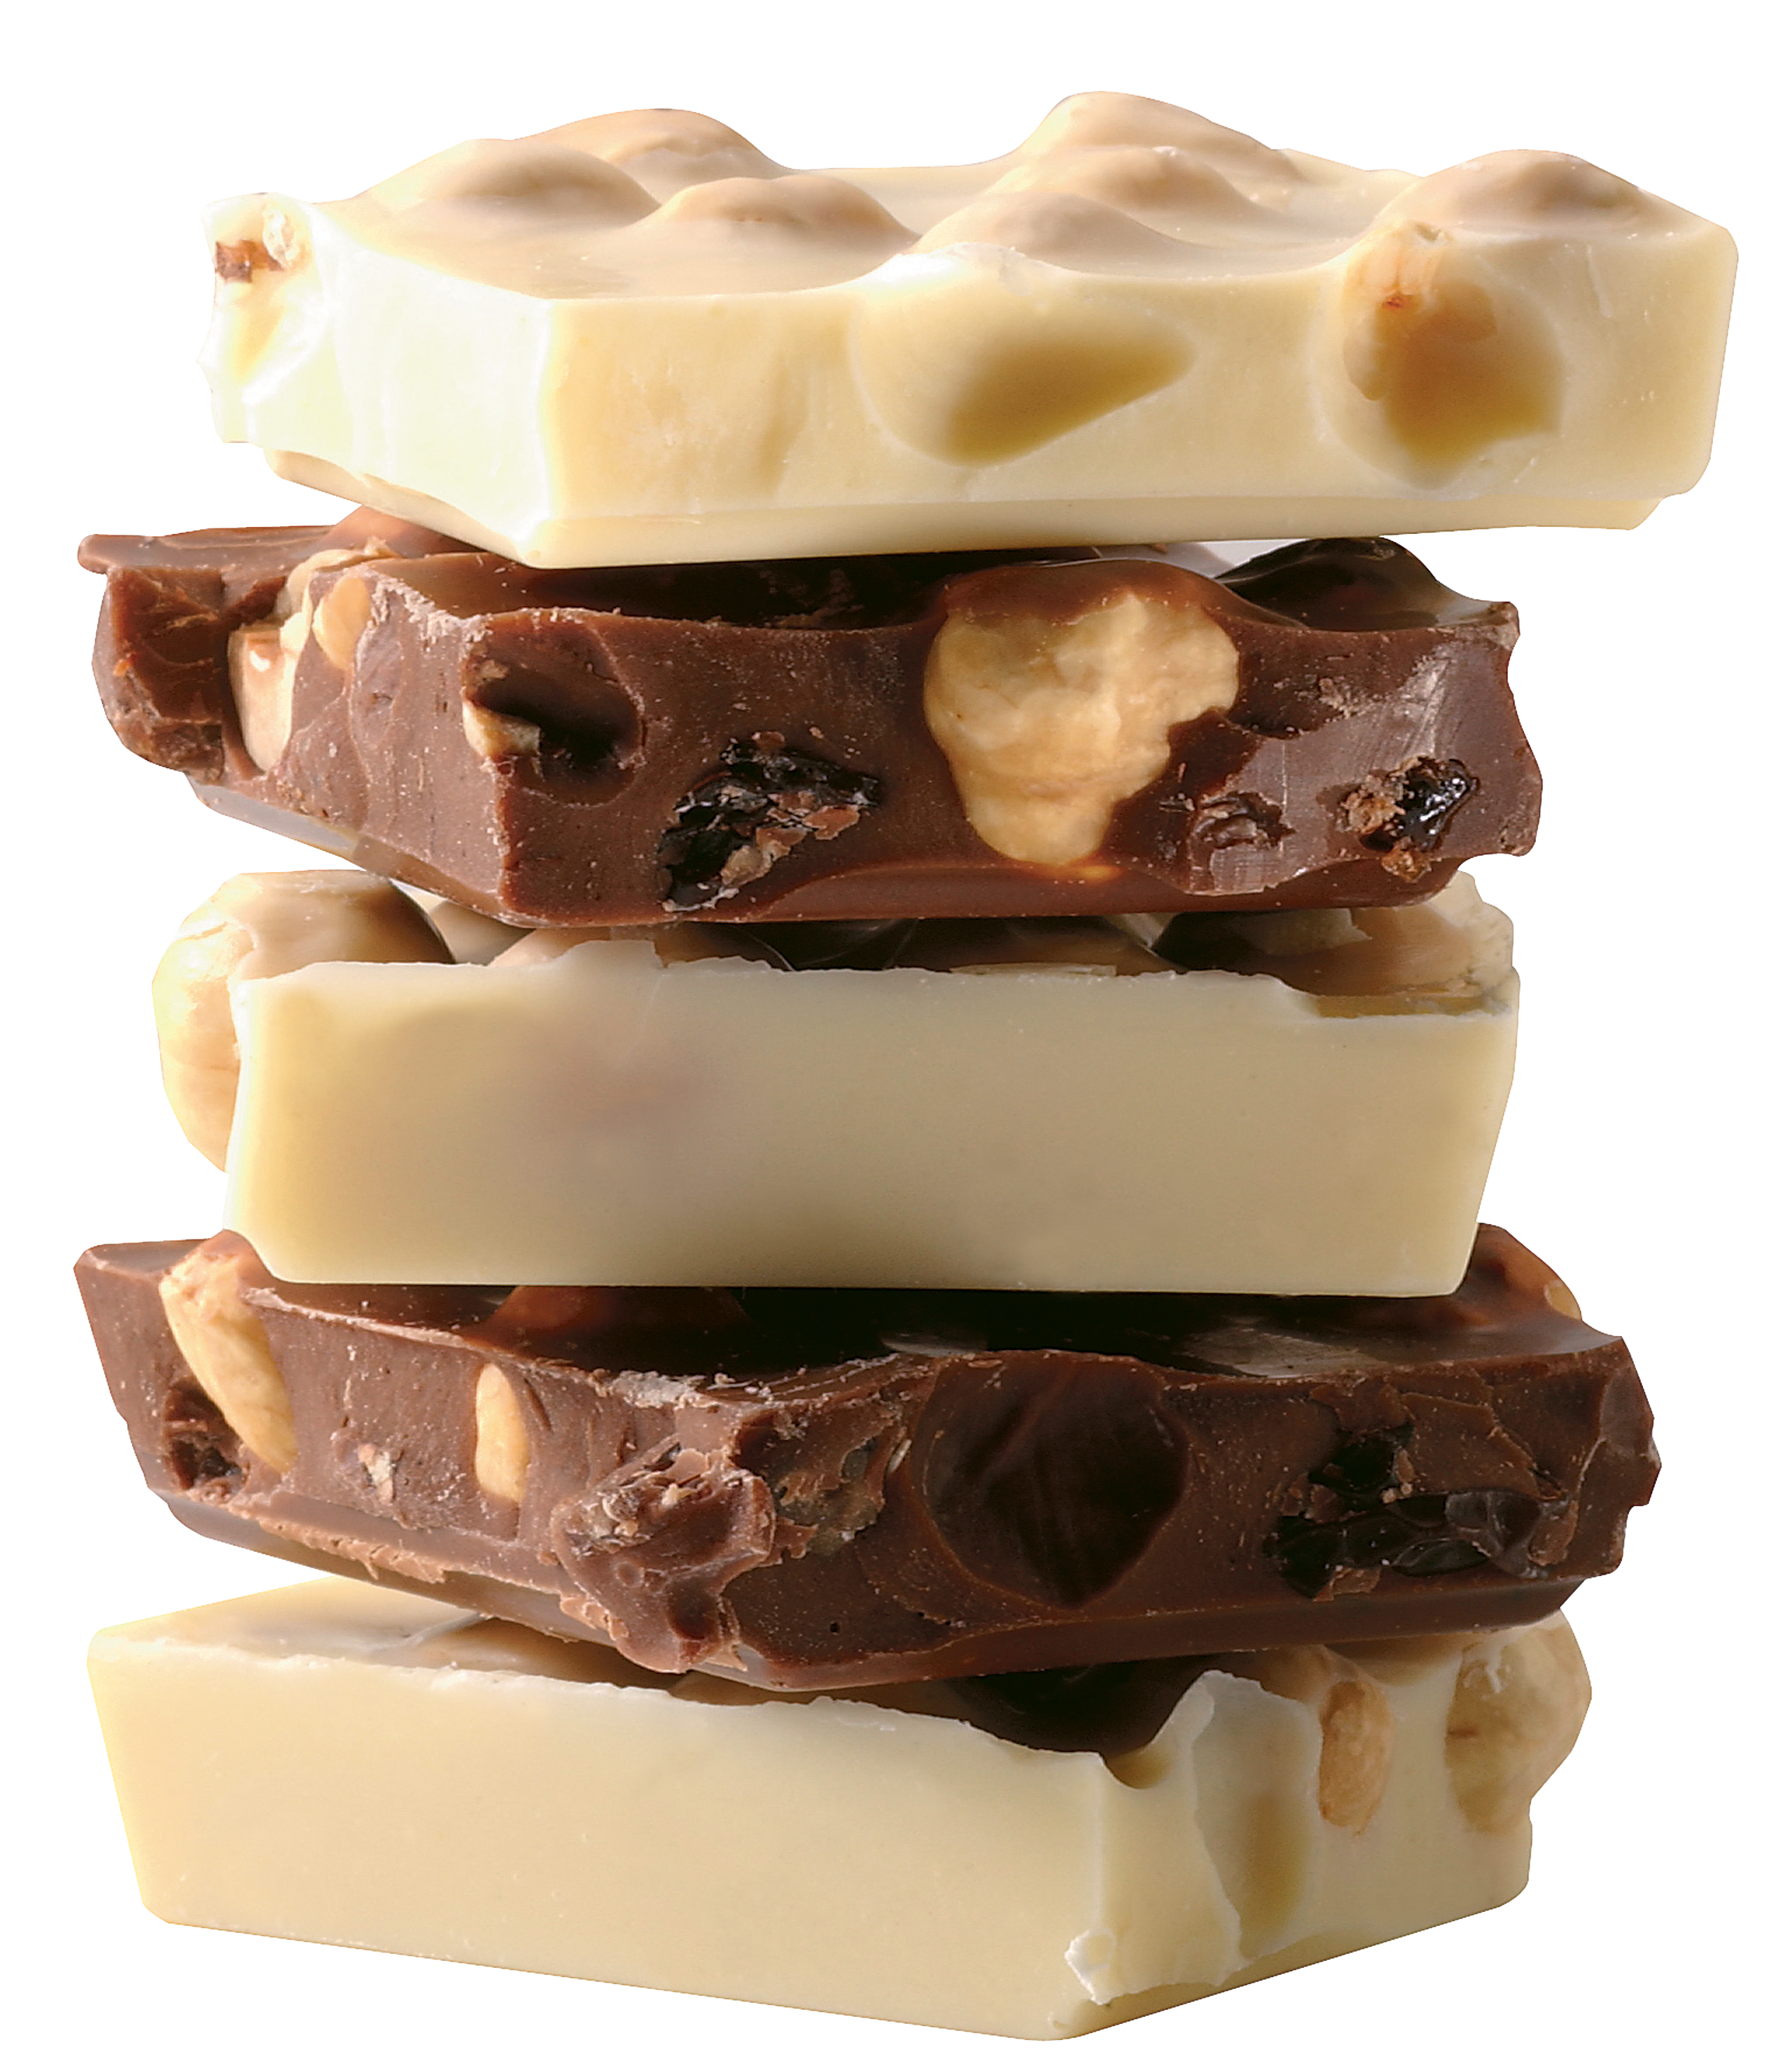 White chocolate png. And dark bars picture